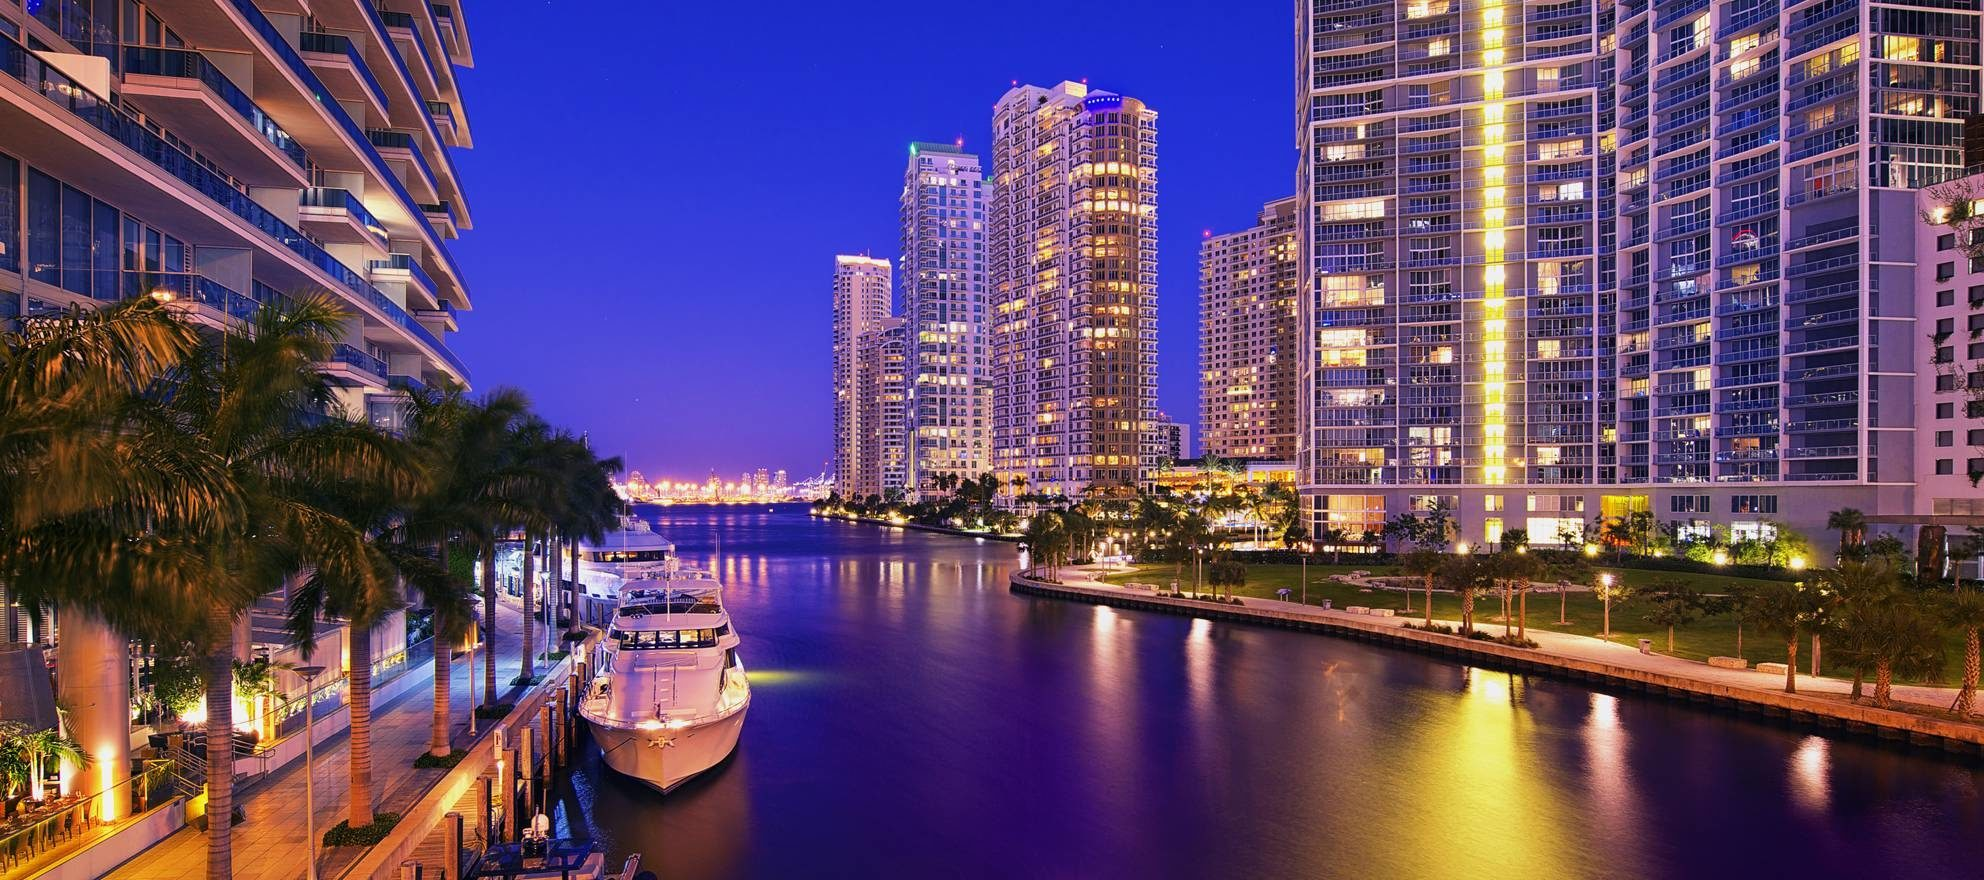 Luxury homes in Miami 12.1 percent more expensive than average